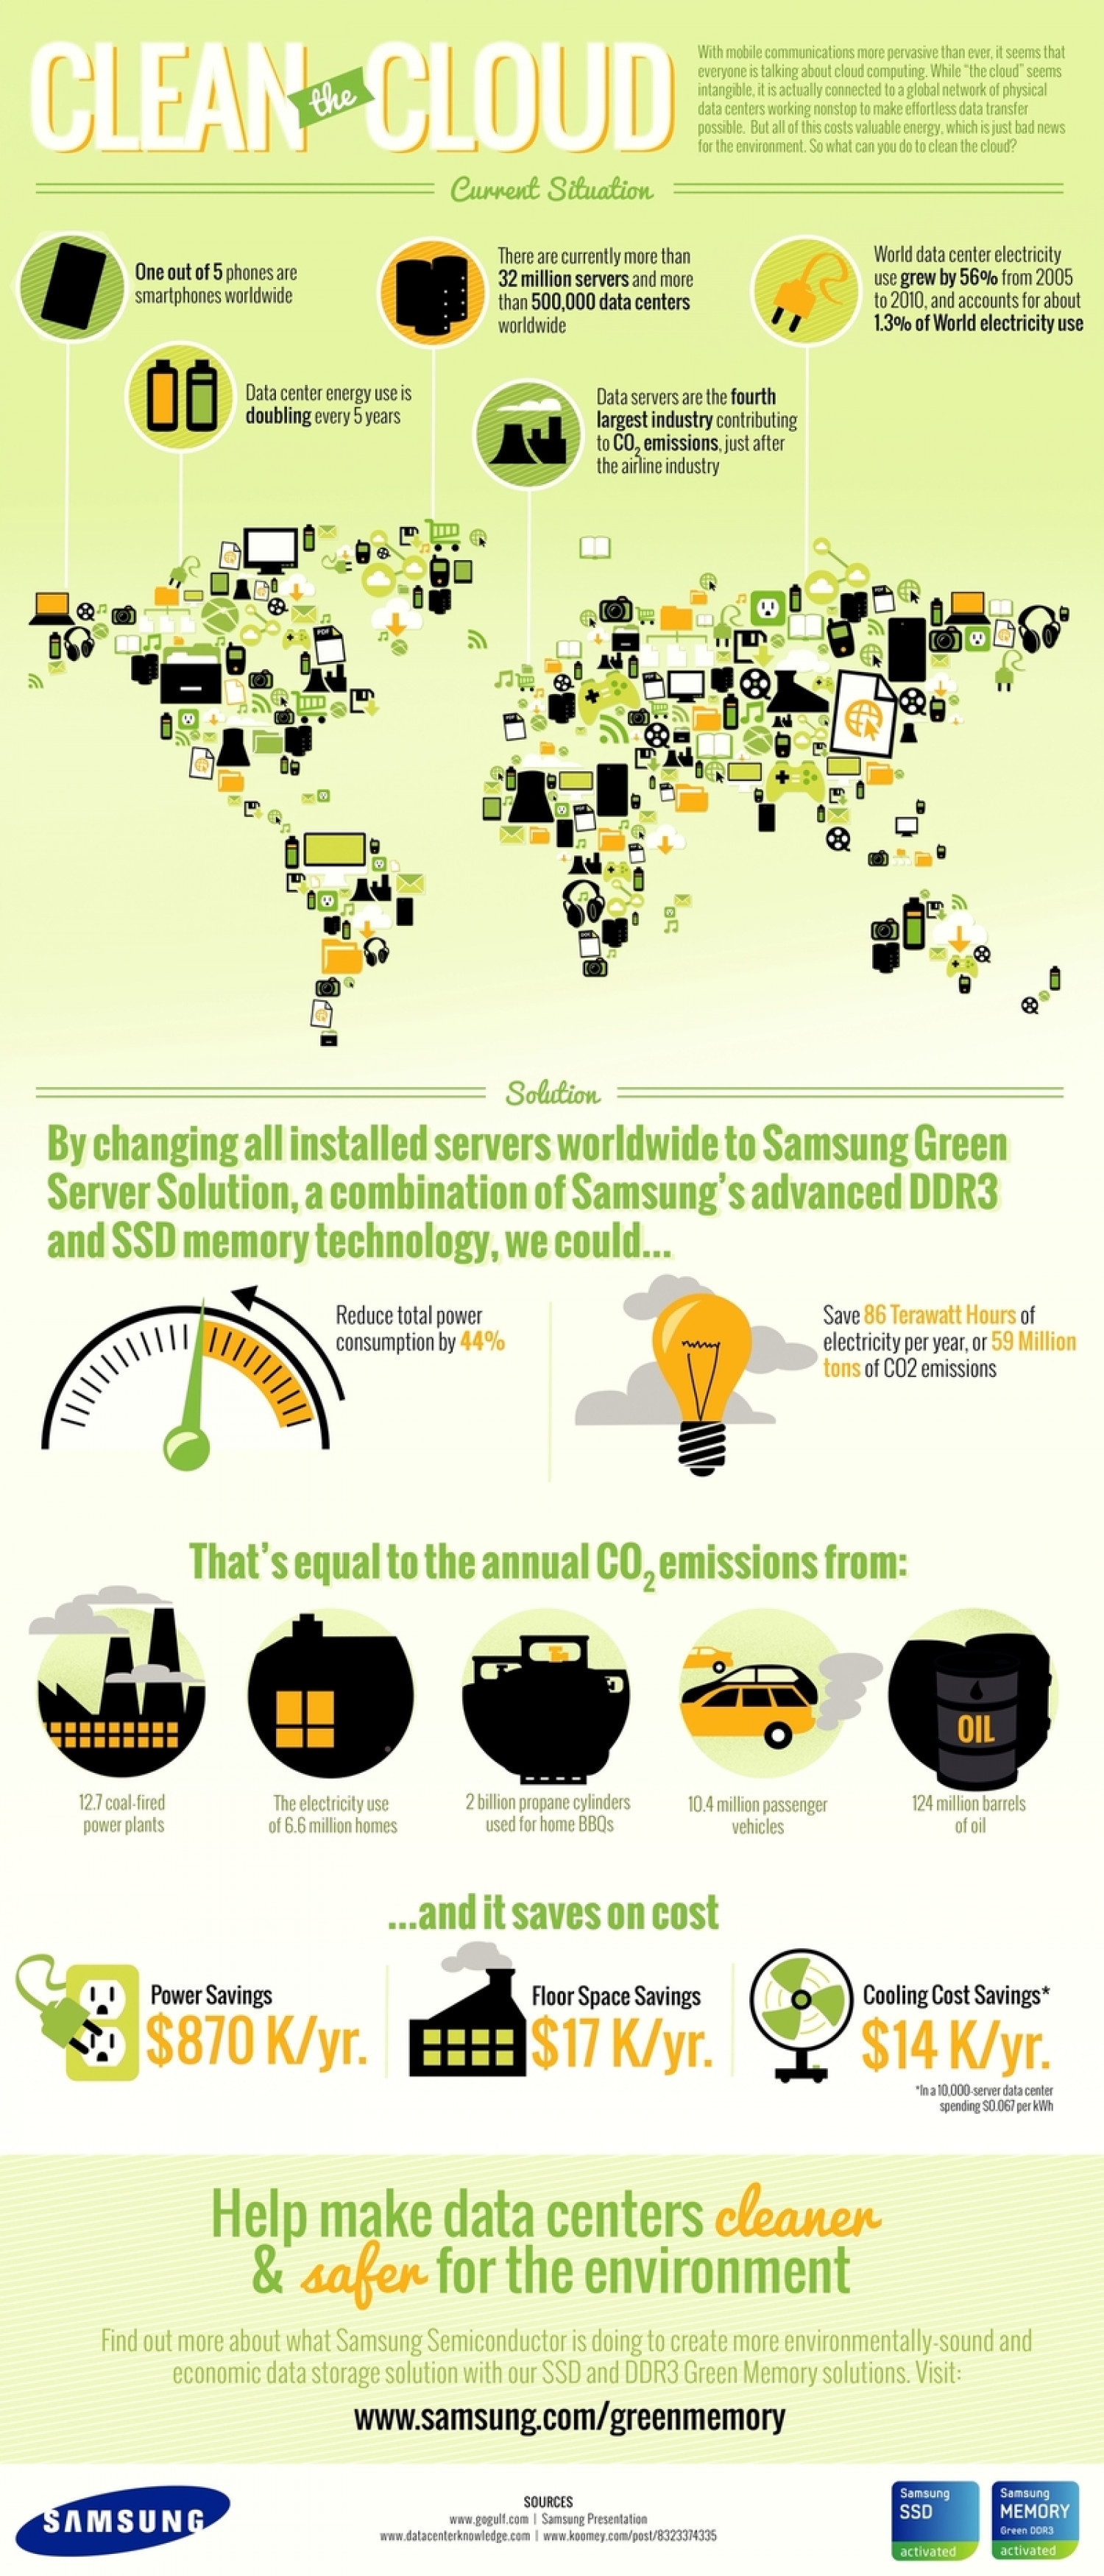 Samsung Clean the Cloud Infographic